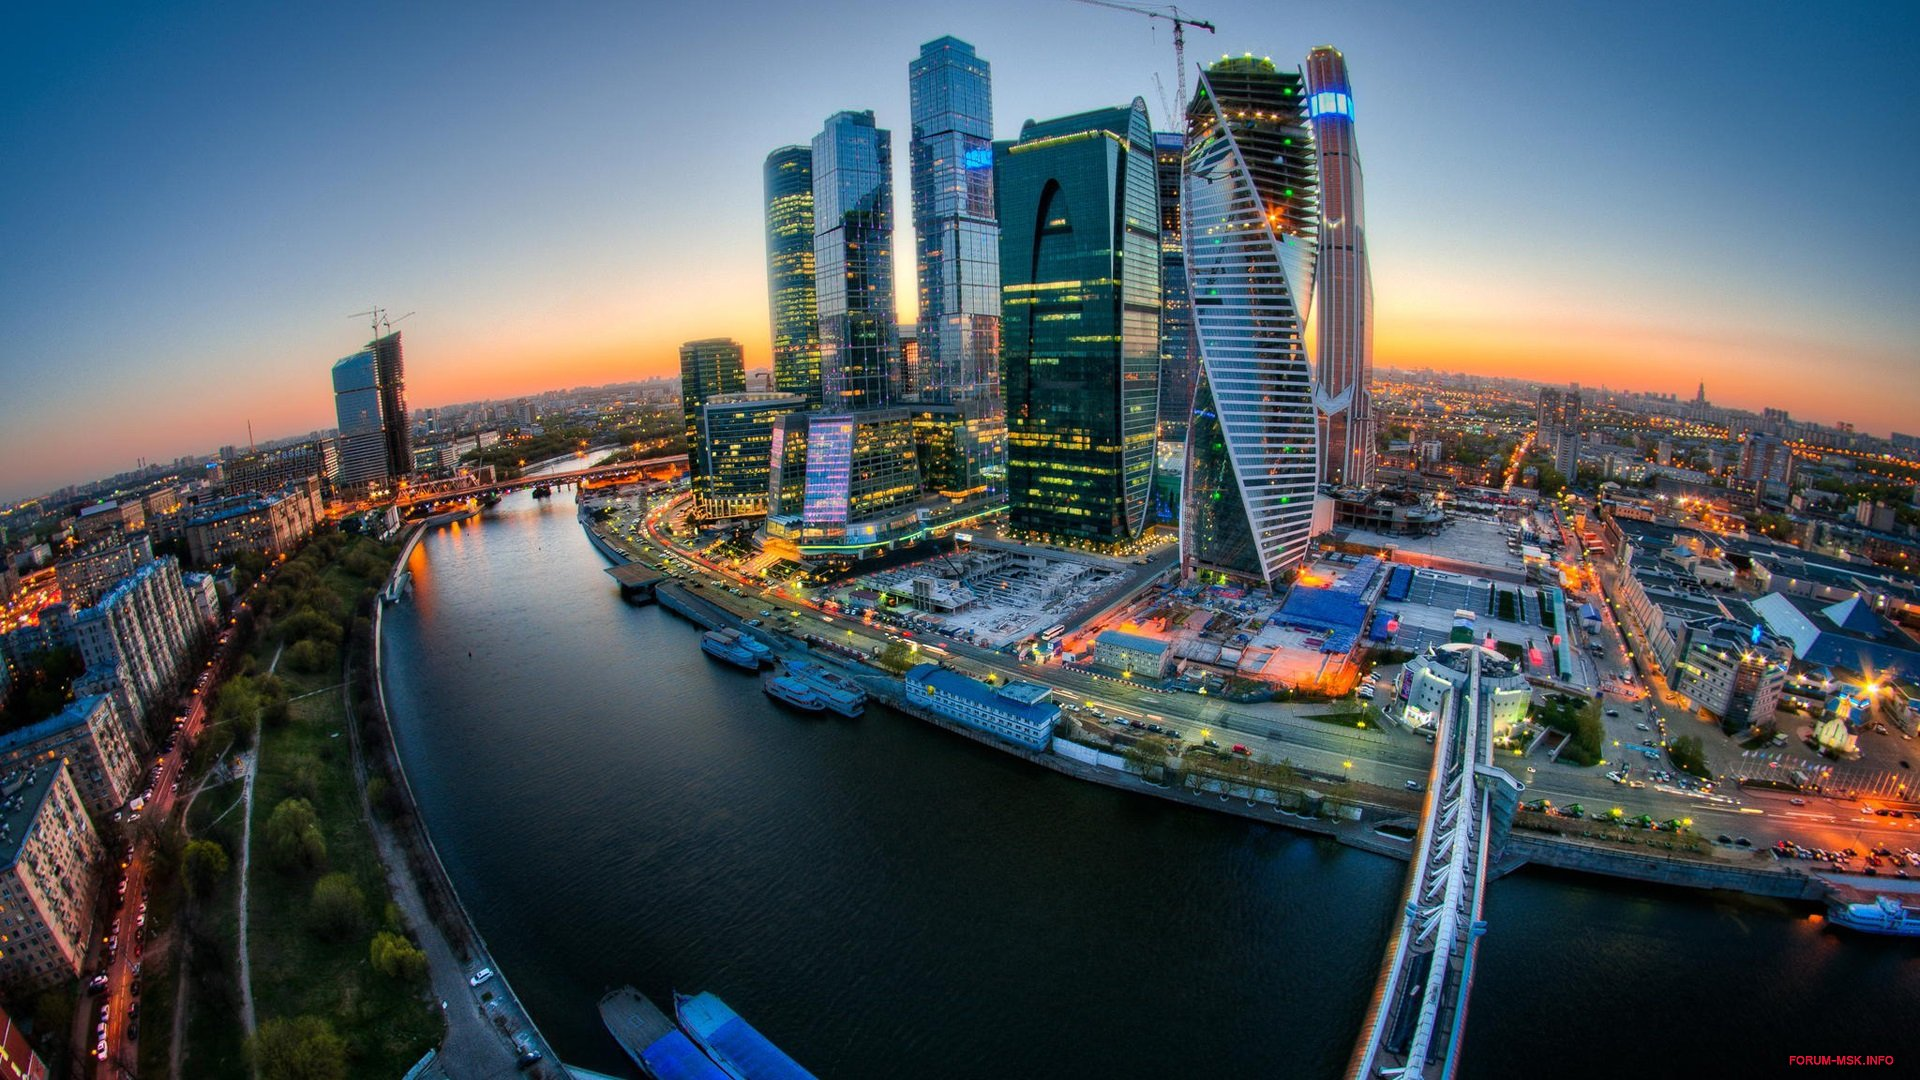 Moscow-City-river-bridge-sunset-buildings-lights_1920x1080.jpg